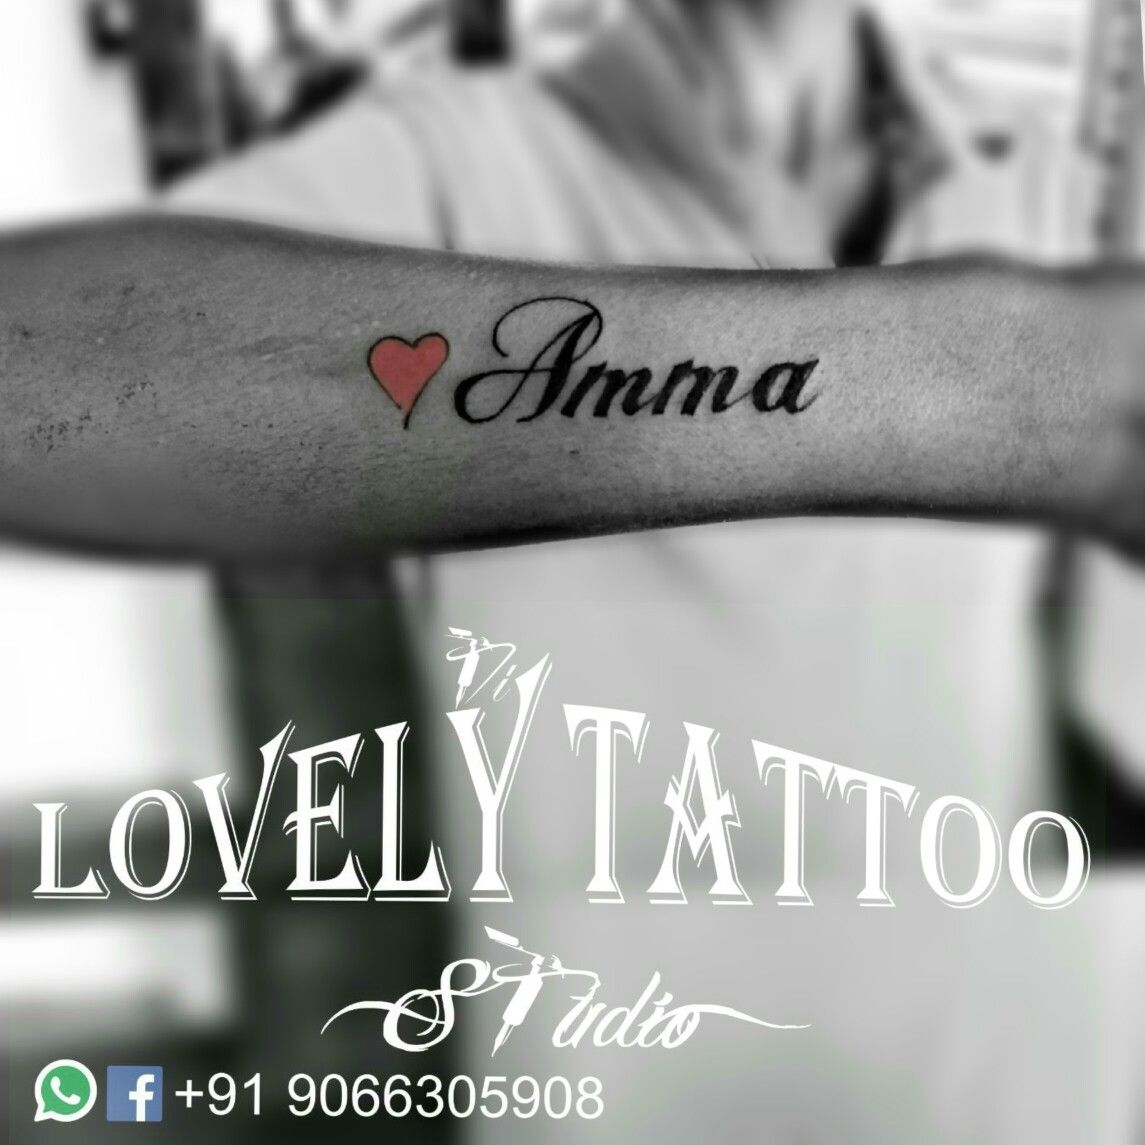 Amma Tattoo Lovely Tattoo Tattoos Fish Tattoos Tattoo Quotes